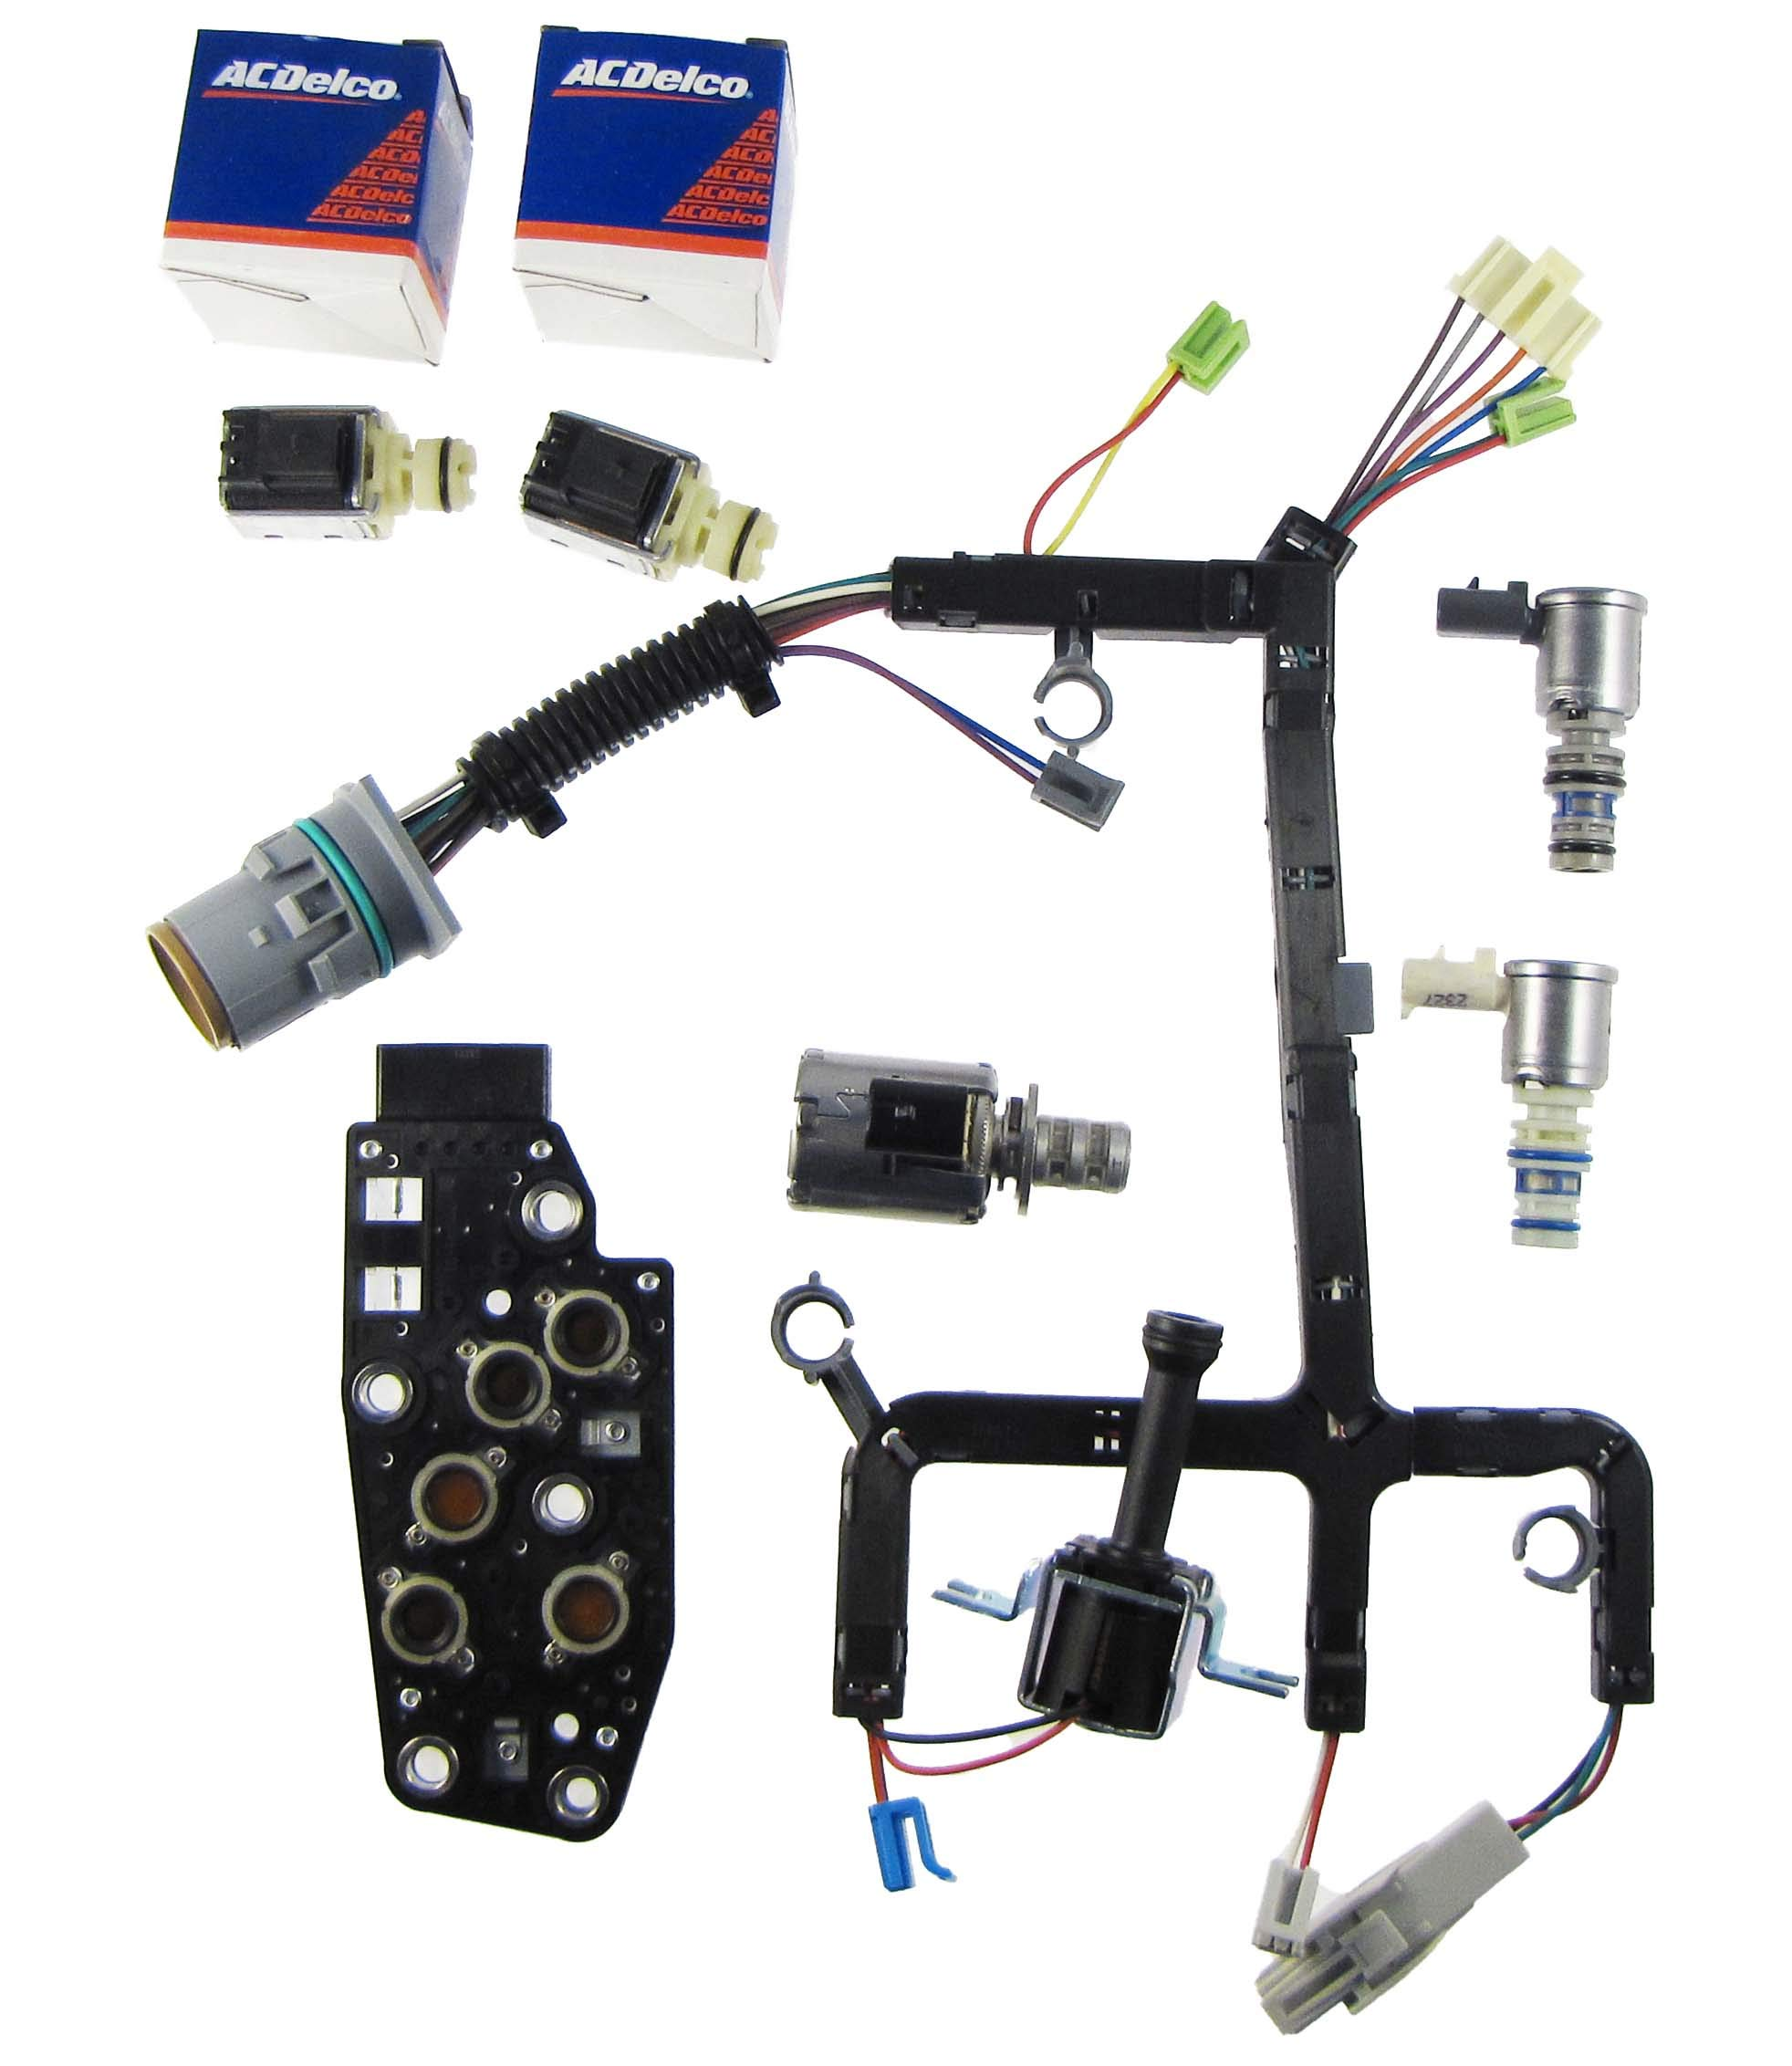 Transmission Parts Now 4L60E 4L65E Solenoid kit, Shift Solenoid, EPC, Wire Harness, TCC, 3-2